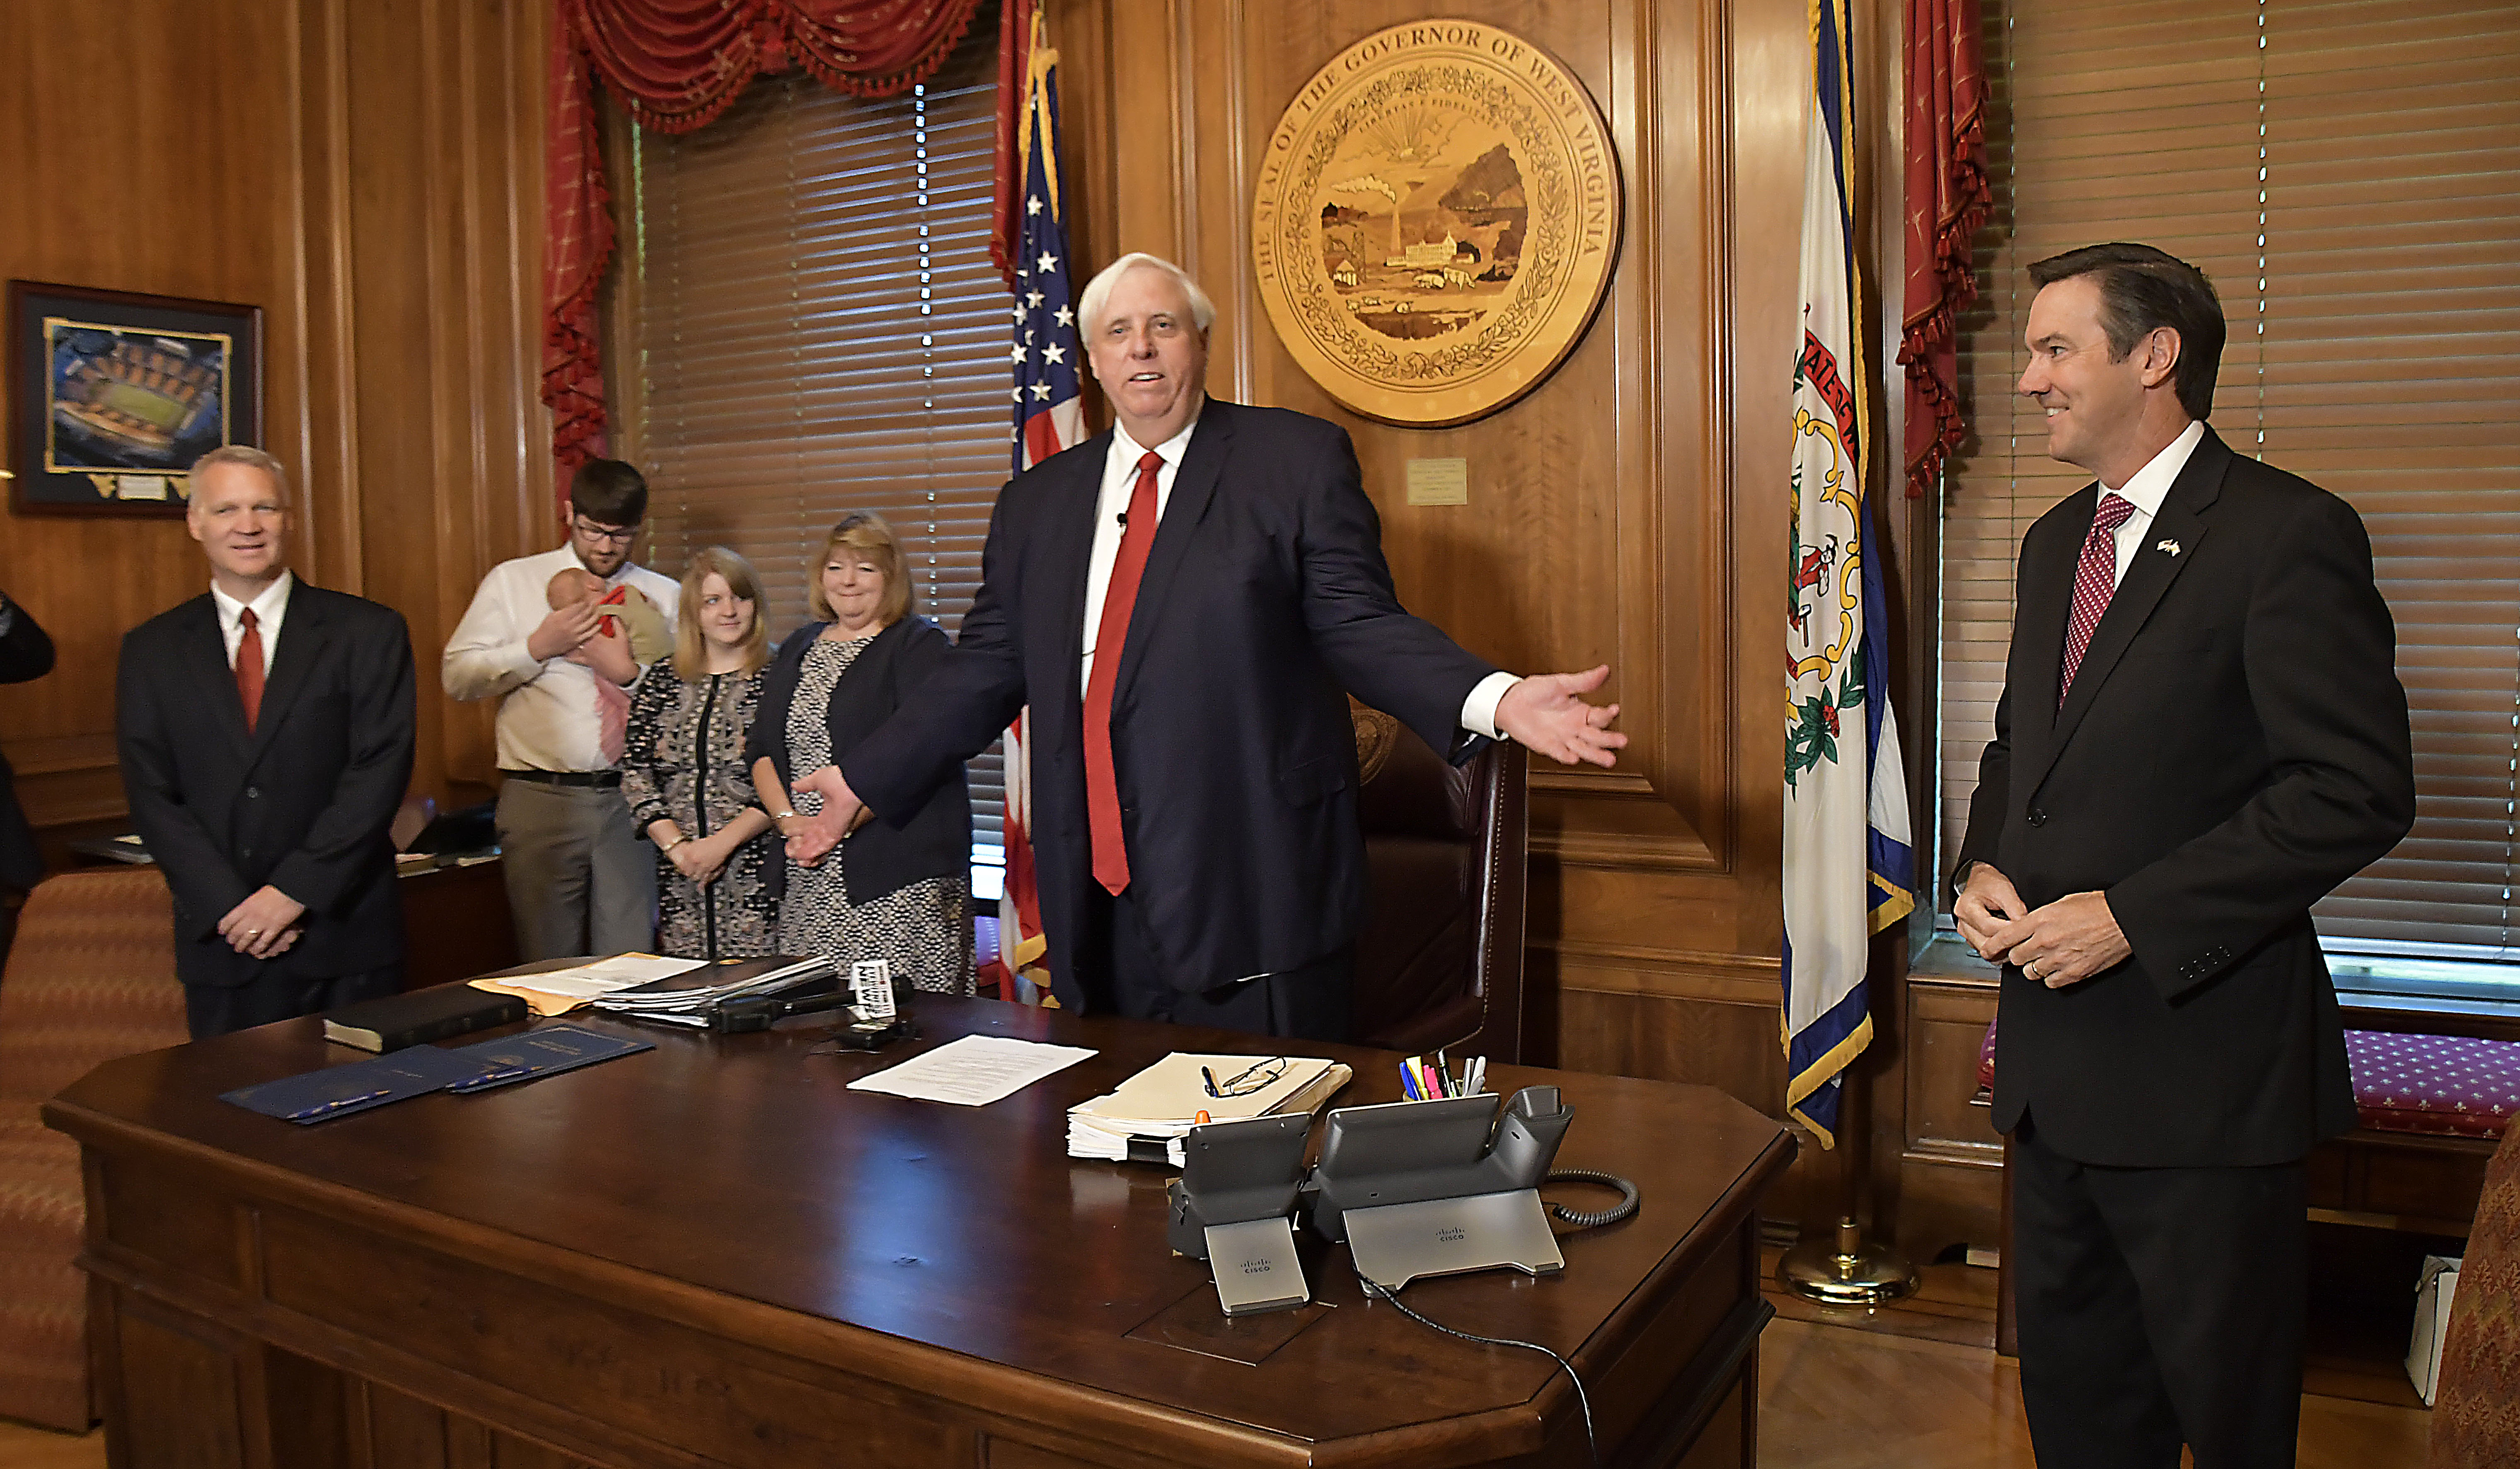 Gov. Jim Justice appoints two interim members of the West Virginia Supreme Court of Appeals. (justices_Panorama1/Flickr Creative Commons)